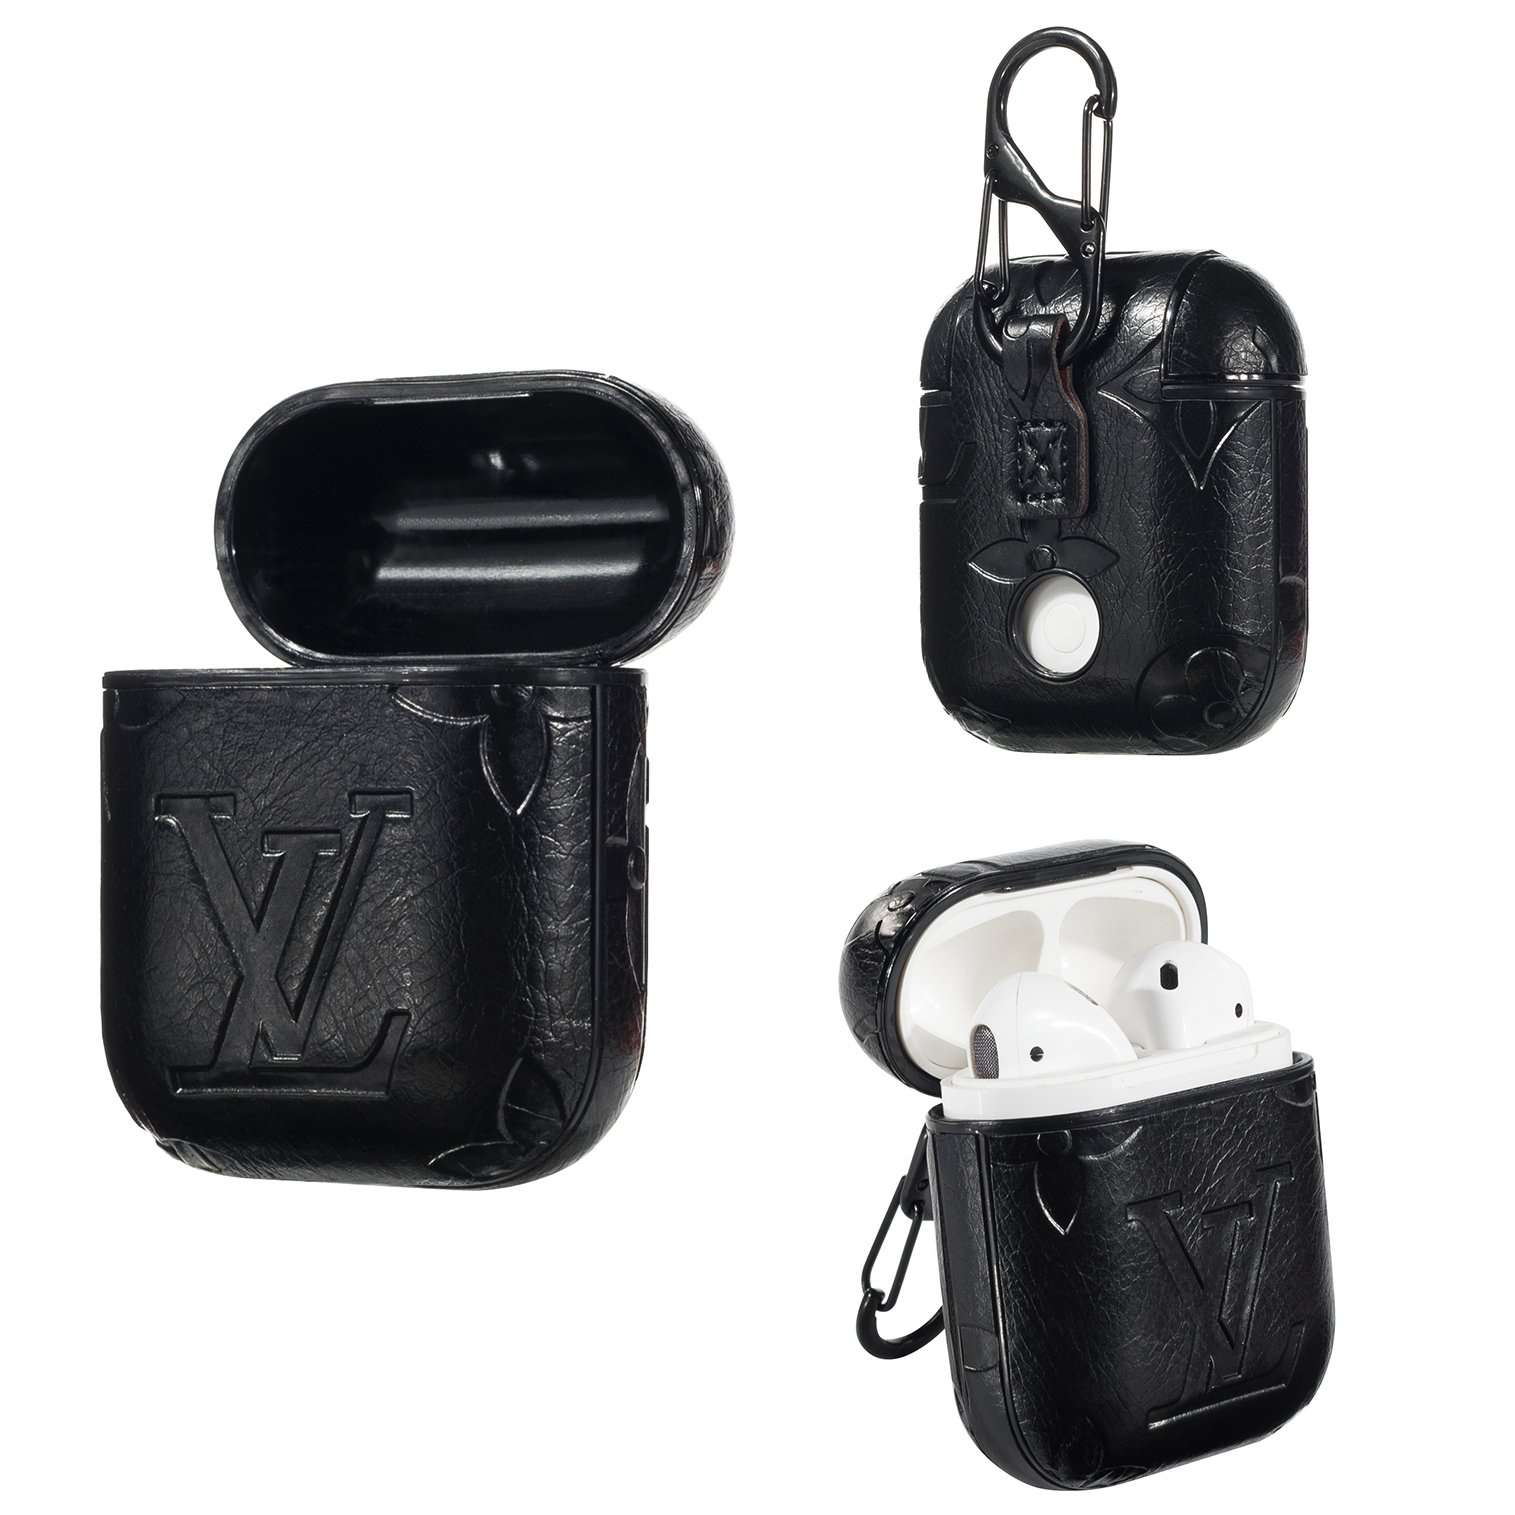 Louis Vuitton AirPods Leather Protective Shockproof Case